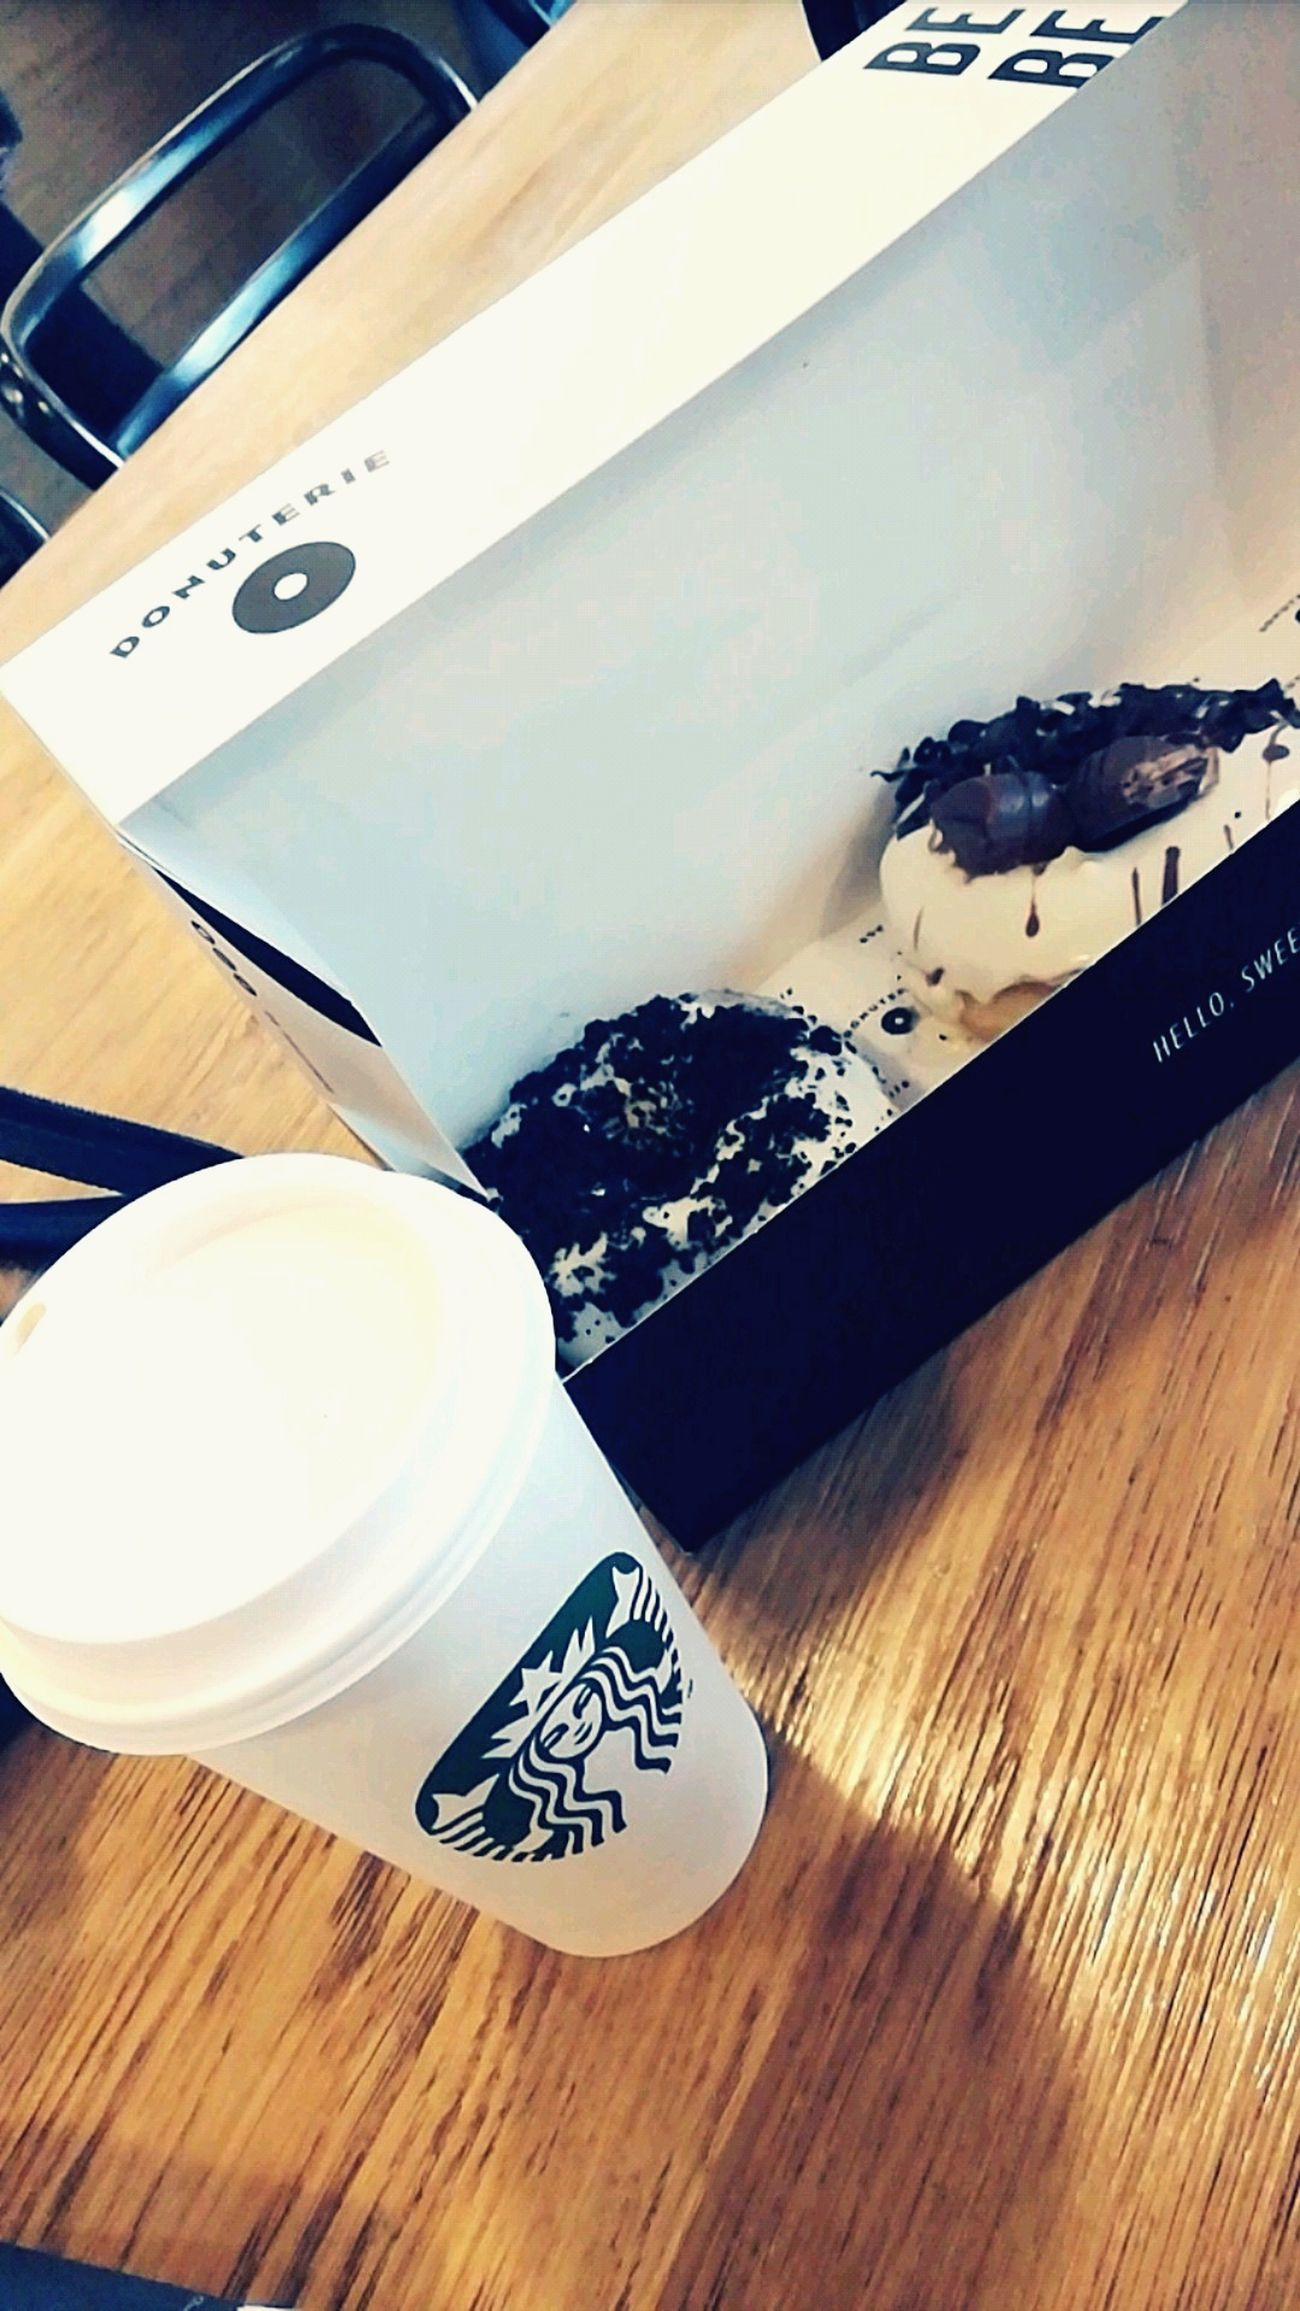 Starbucks Starbuckslover Caramel Machiatto Drink Donuts Ready-to-eat Chocolate♡ Table No People Peaceful Moment